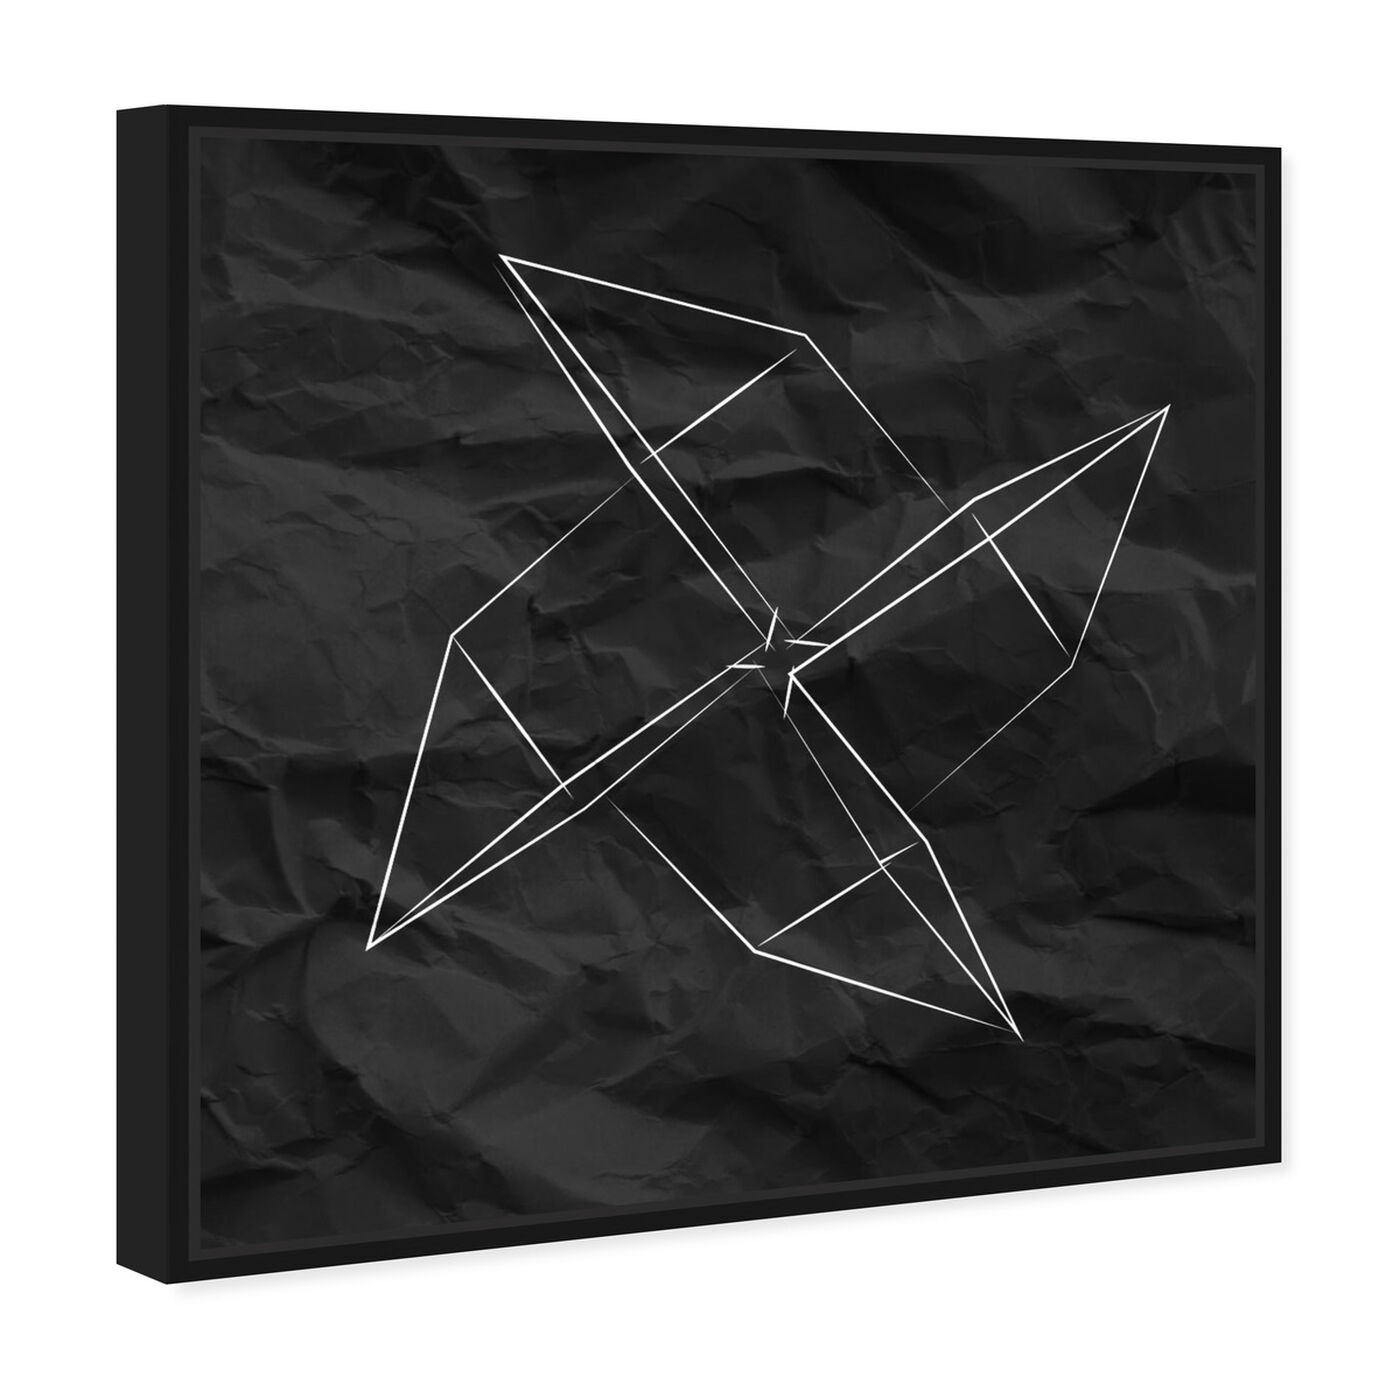 Angled view of Origami Moulin featuring abstract and geometric art.